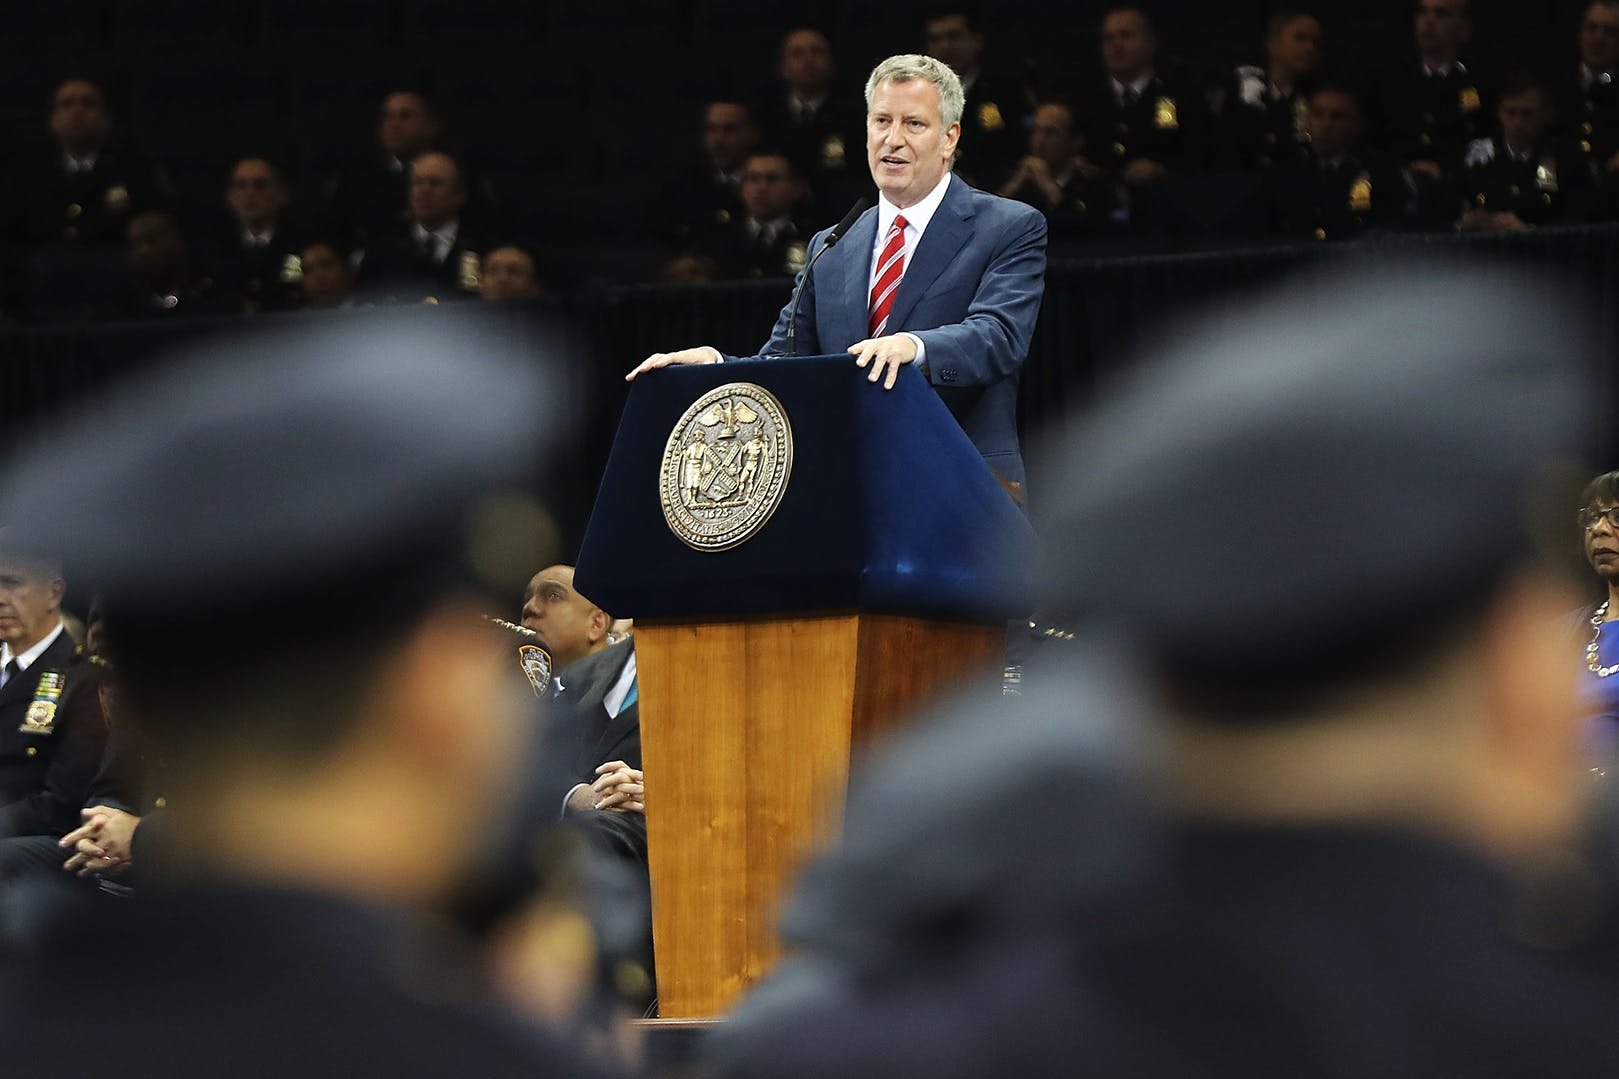 NEW YORK, NY - JULY 01:  New York City Mayor Bill de Blasio speaks to new members of New York City's police department's graduating class during a swearing in ceremony at Madison Square Garden on July 1, 2016 in New York City. The New York City Police Department's (NYPD) current uniformed strength is approximately 34,500.  (Photo by Spencer Platt/Getty Images)